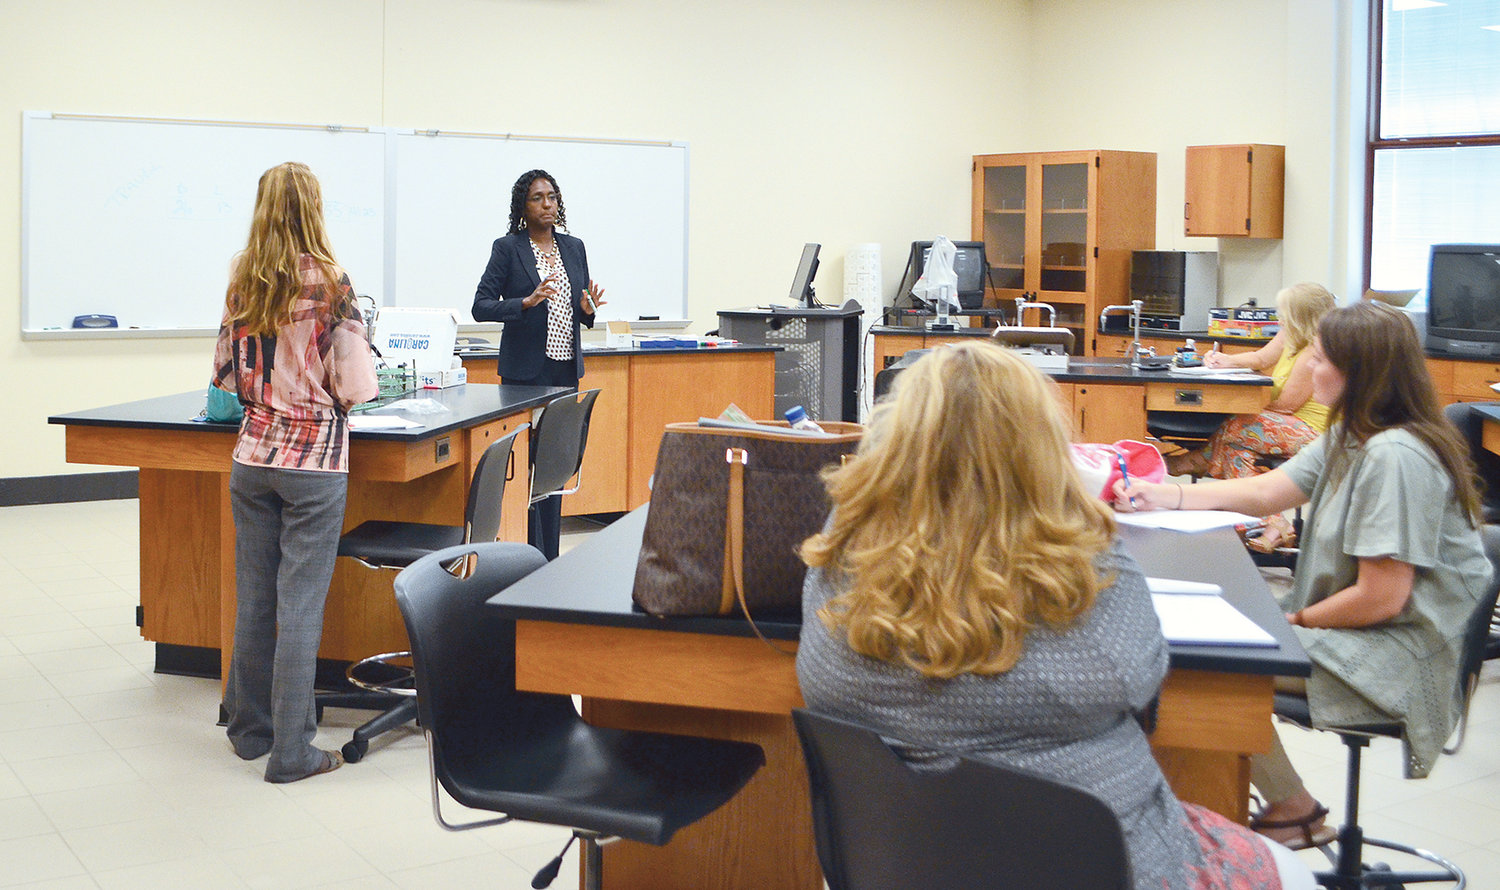 Bevill State Community College held a Professional Development Day on Monday at the Jasper campus to welcome educators for the upcoming fall semester, which beings Thursday. Pictured is a seminar that was held on Monday at the college.